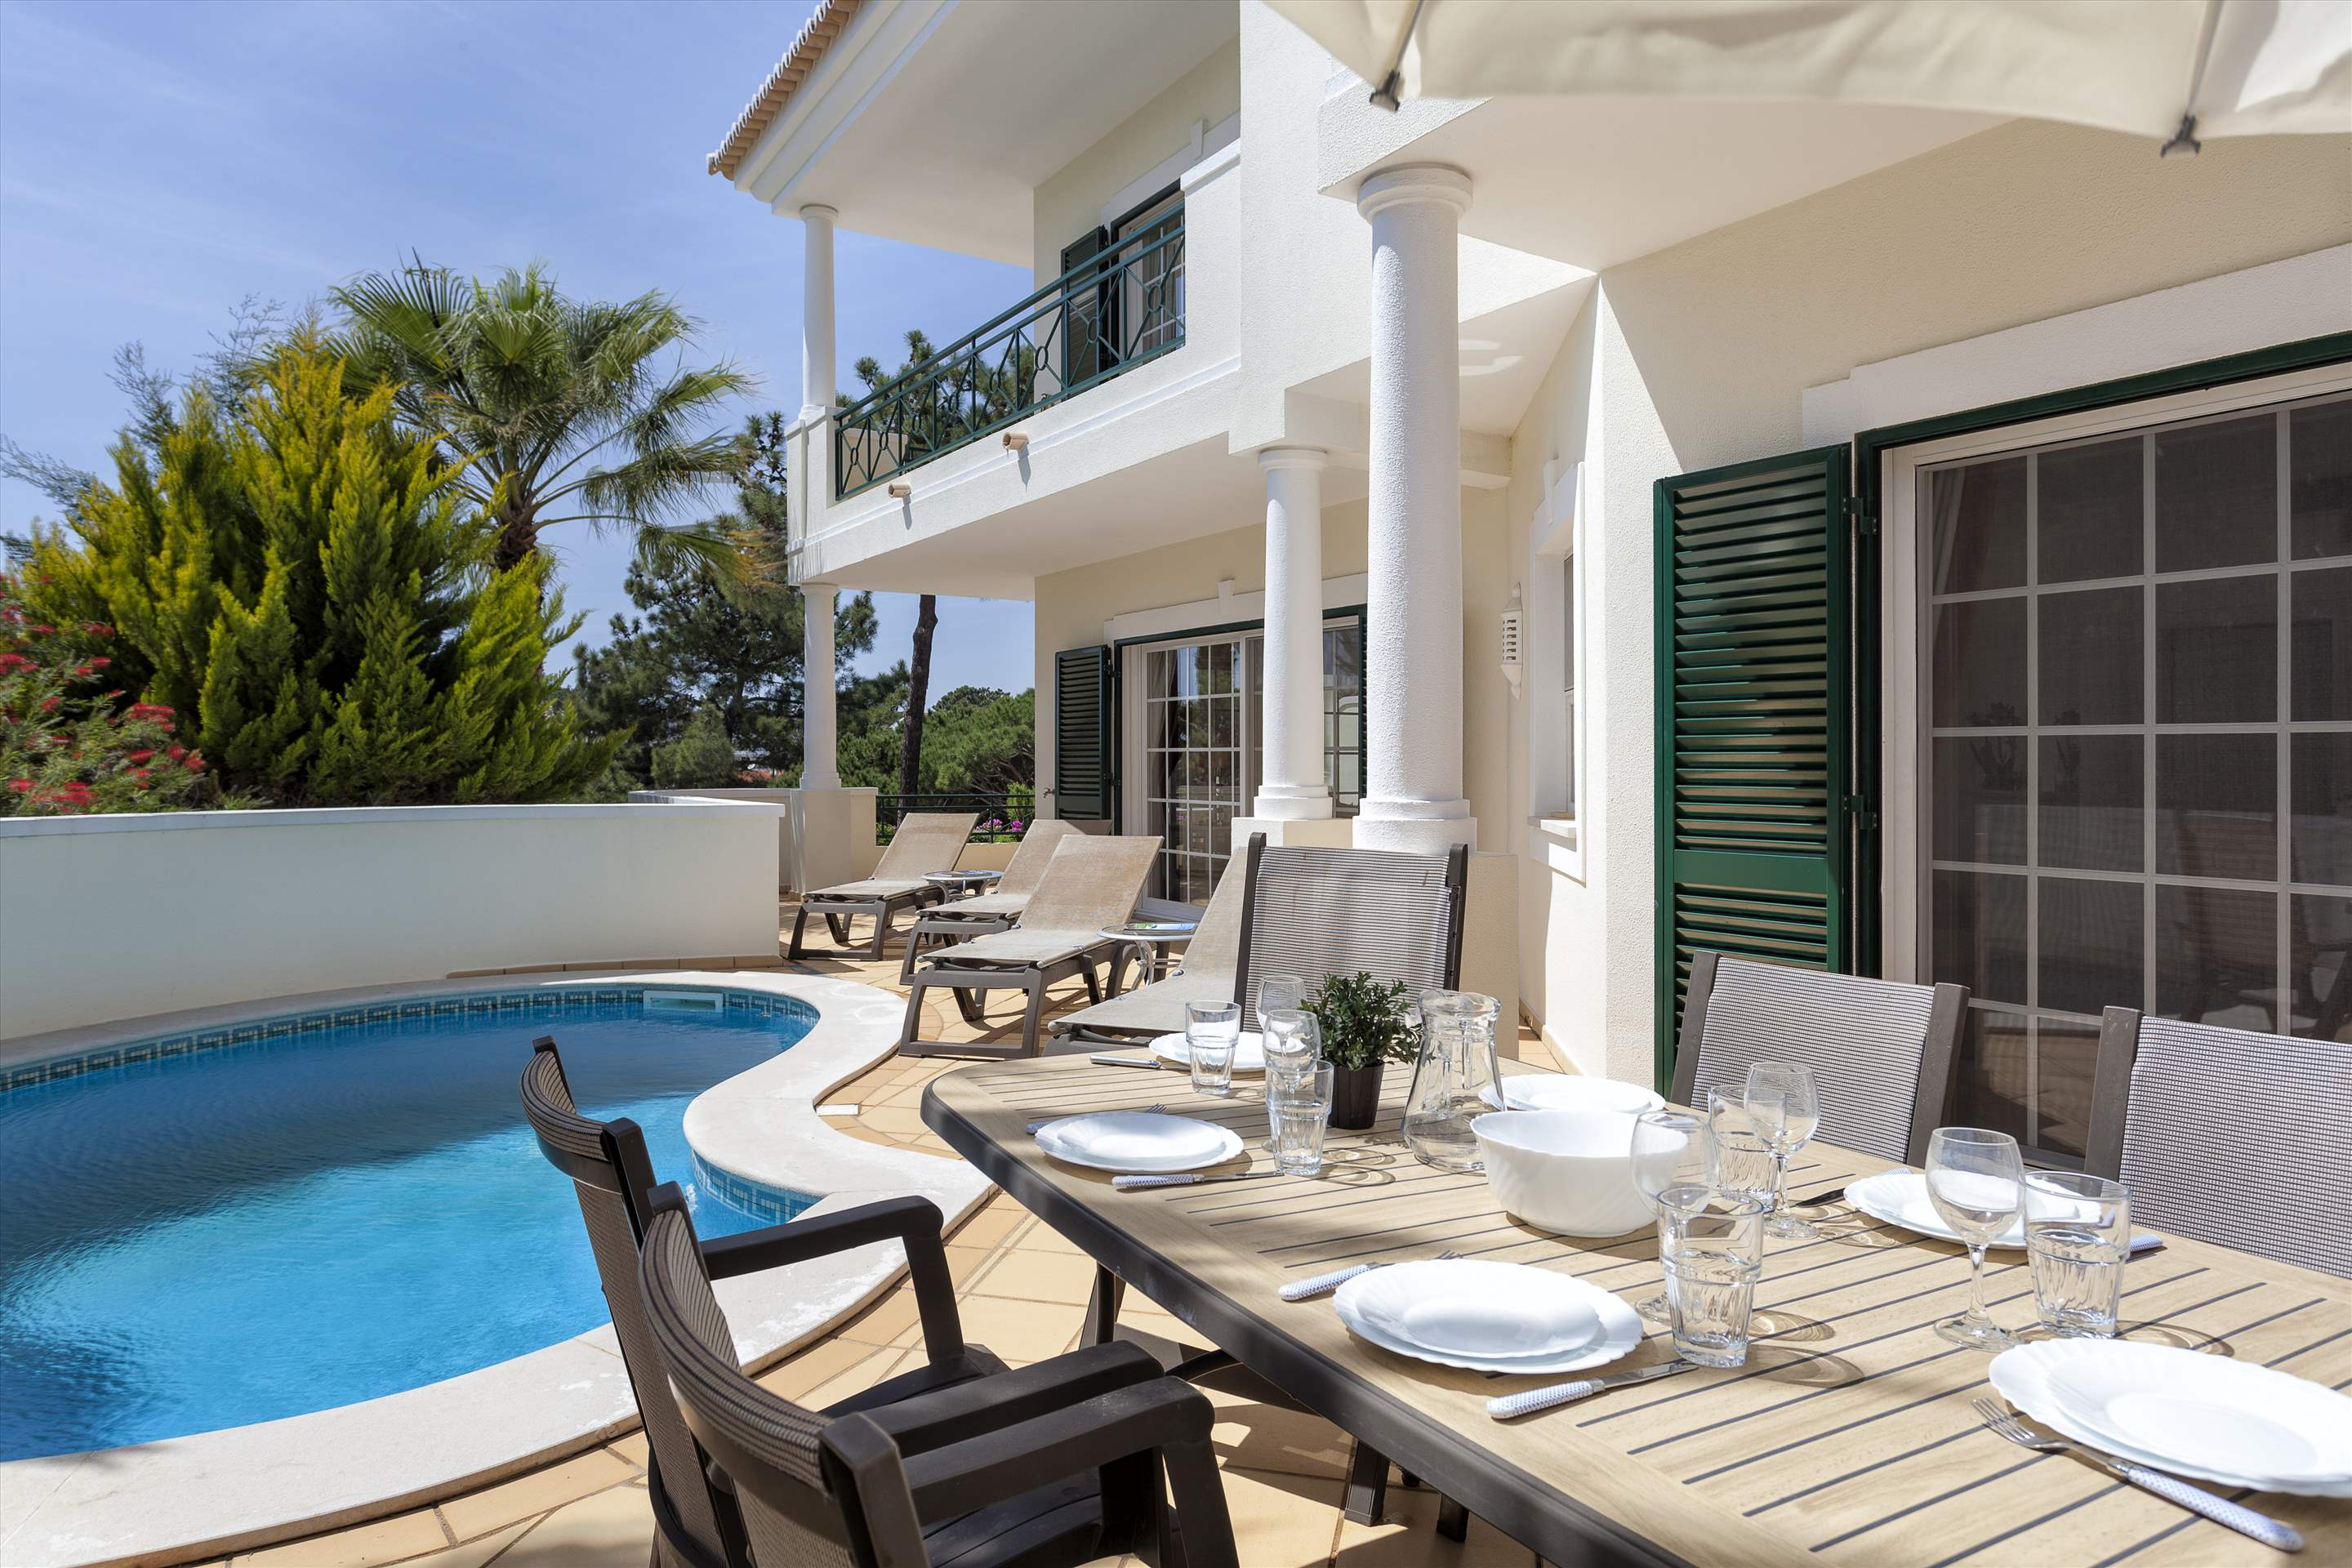 Apartment Romaine, 3 bedroom apartment in Vale do Lobo, Algarve Photo #2